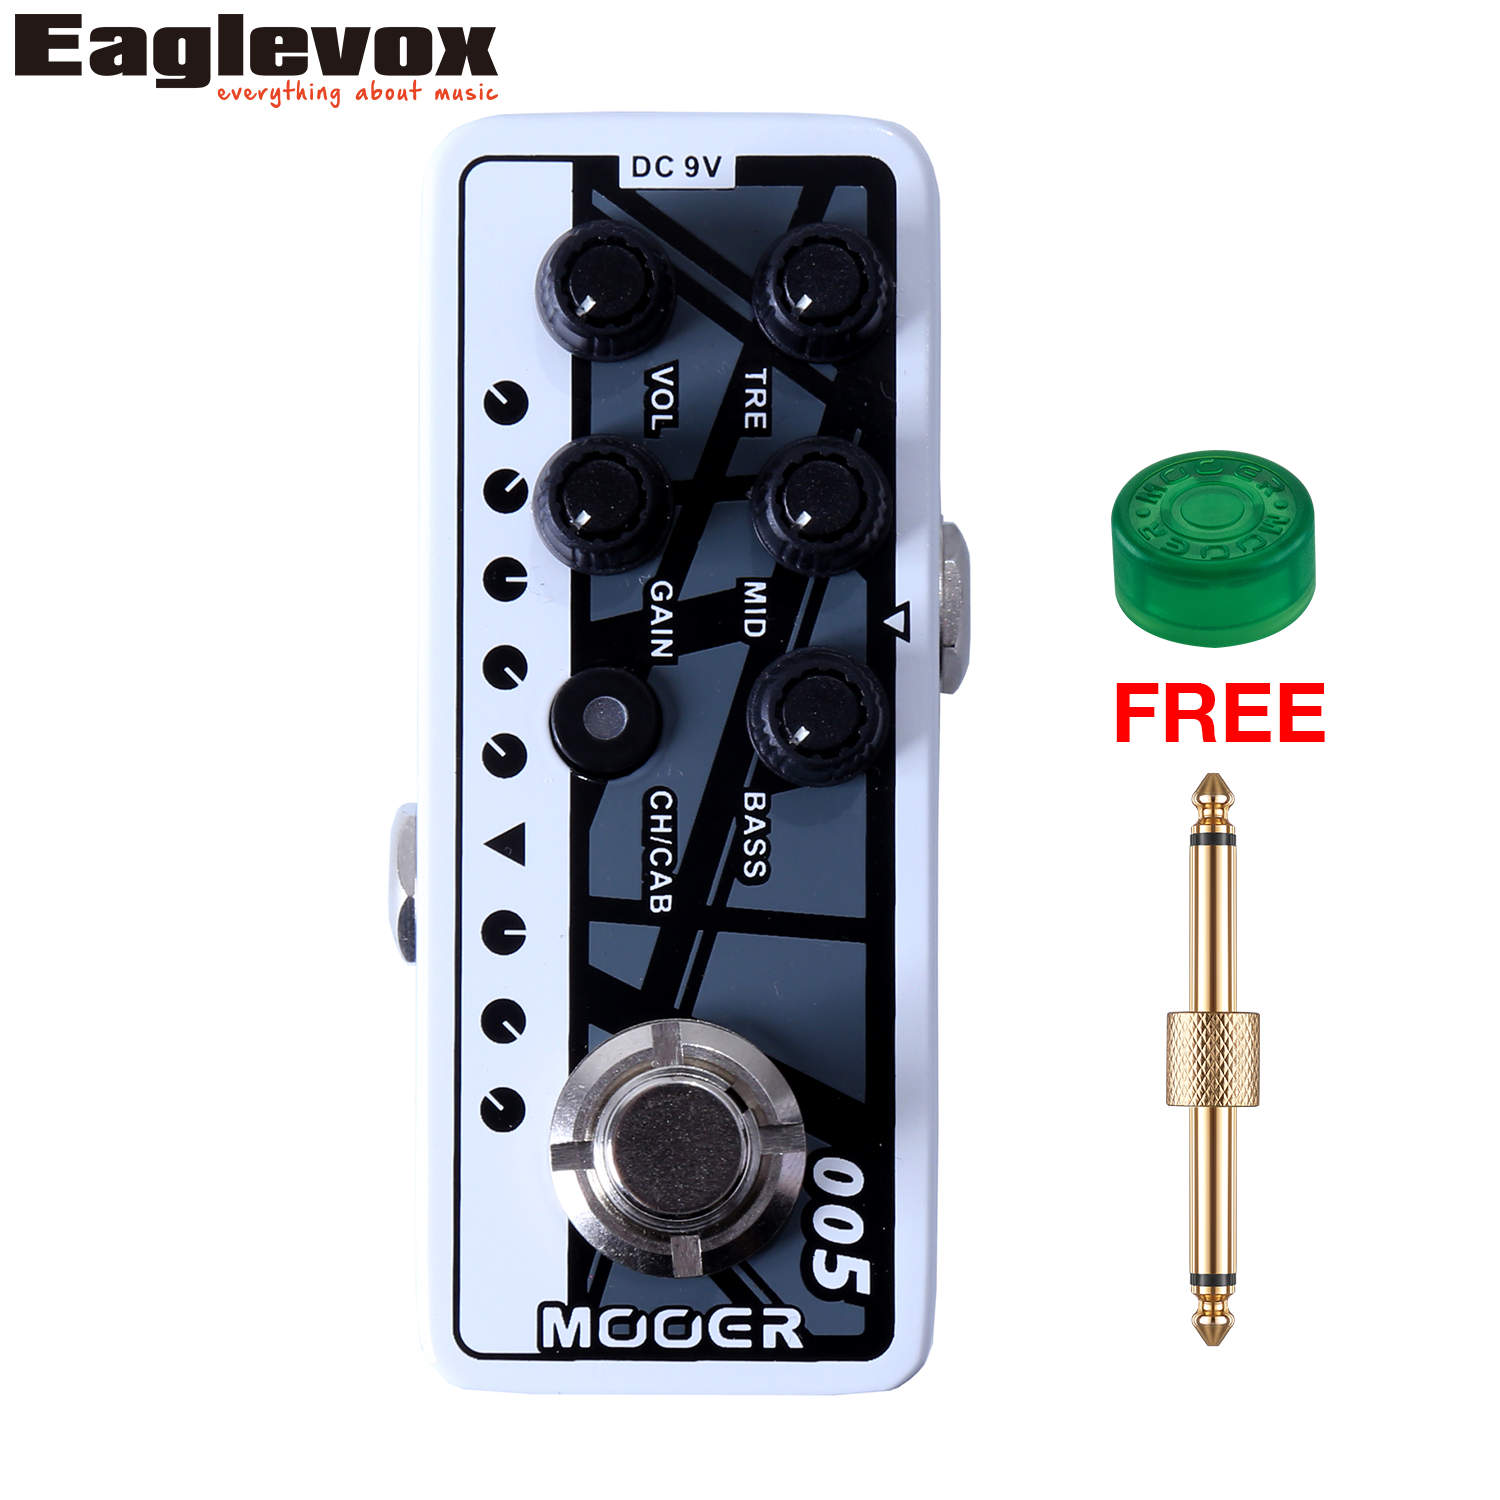 Mooer 005 Fifty-Fifty 3 Micro Dual Channel Preamp 3 band EQ Gain Volume Controls  Guitar Effect Pedal with Free Gift fifty shades darker